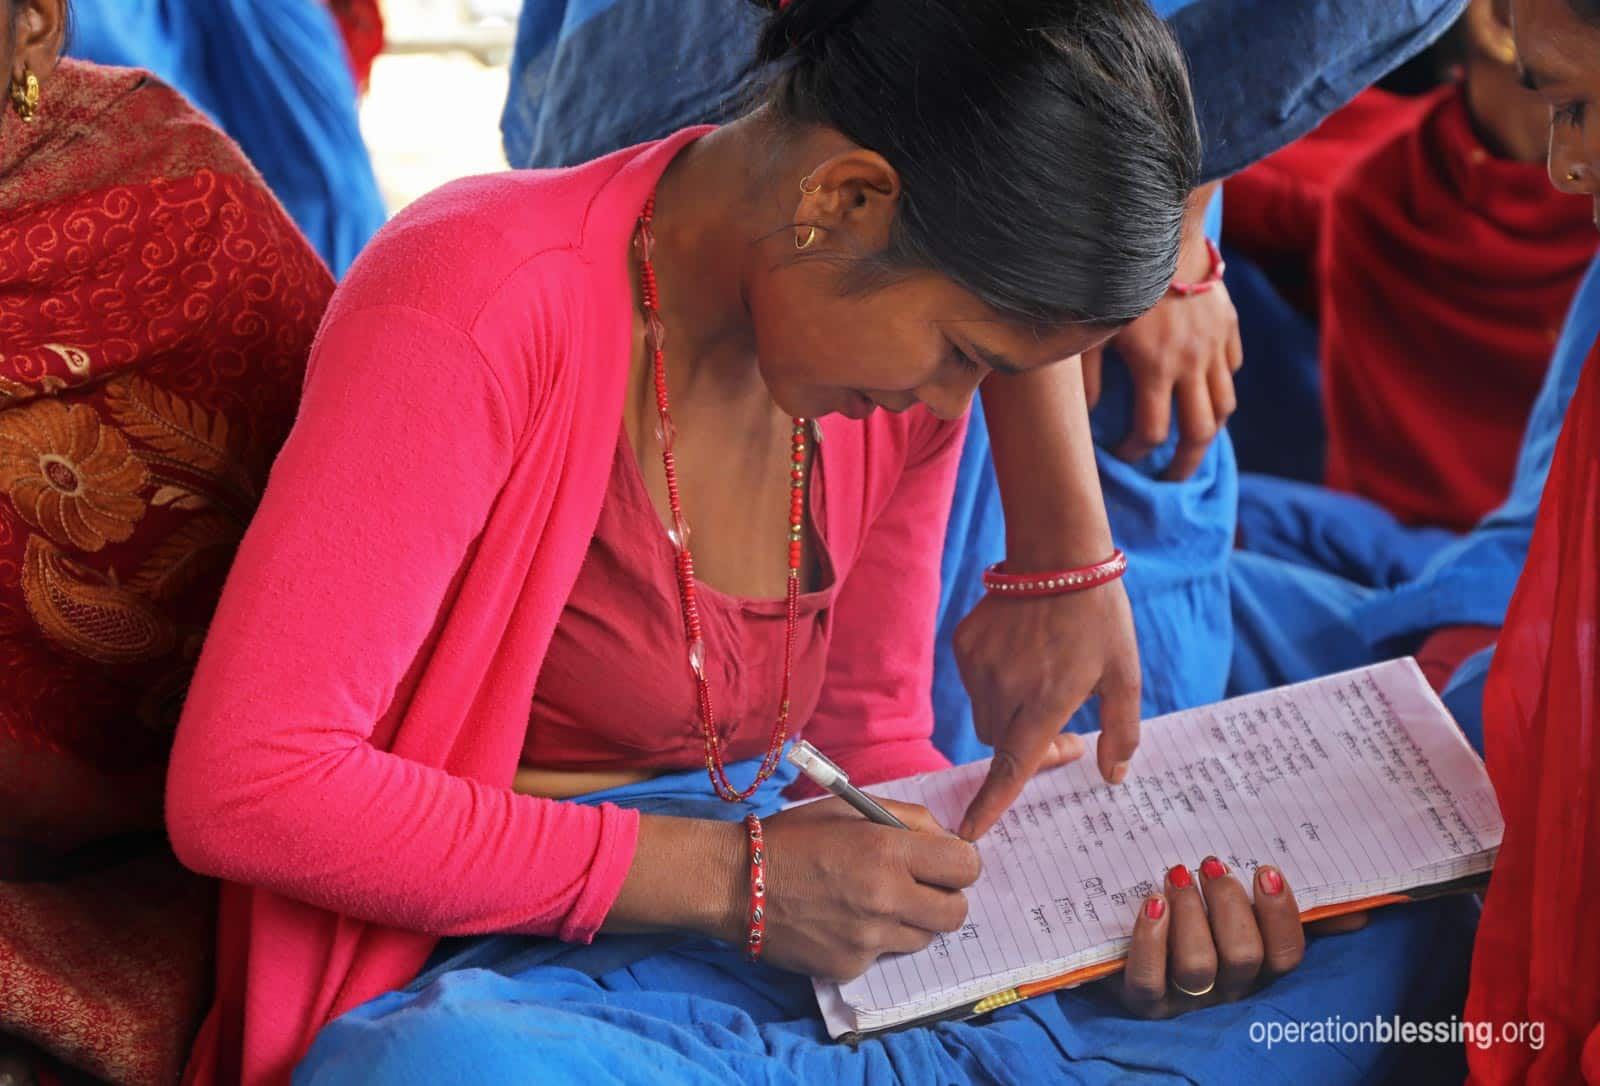 A woman fills out a form at the Mother Group.